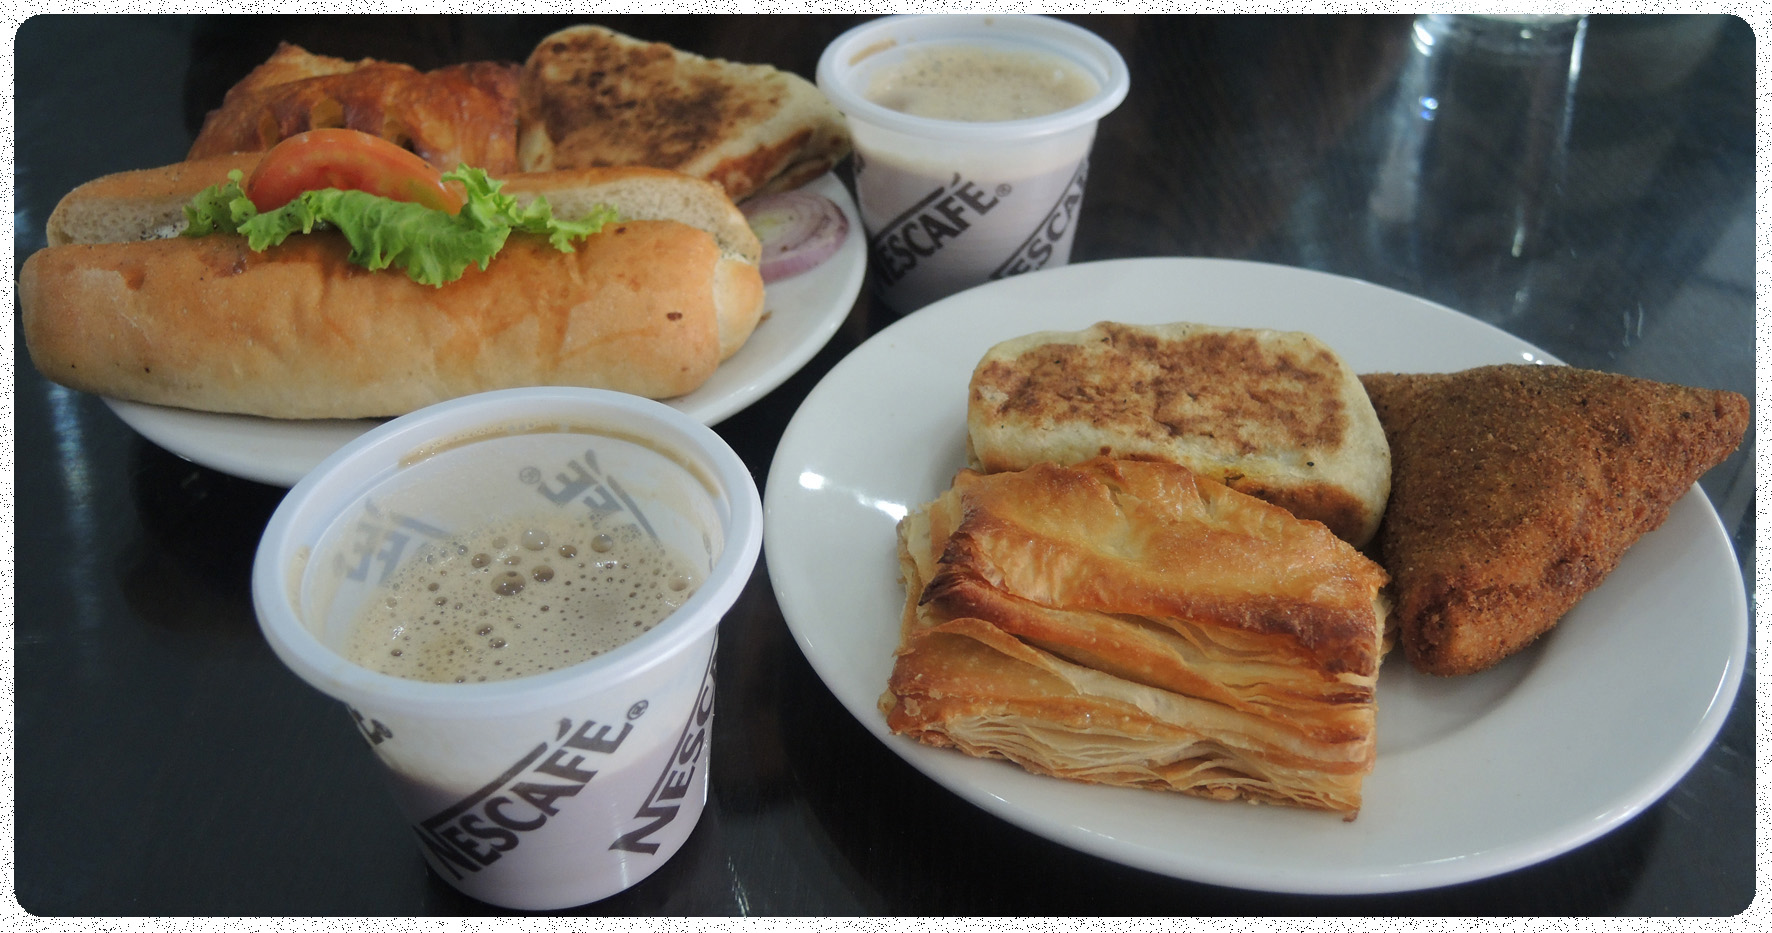 Sri Lankan Breakfast - salty pastries with Nescoffee ;-)